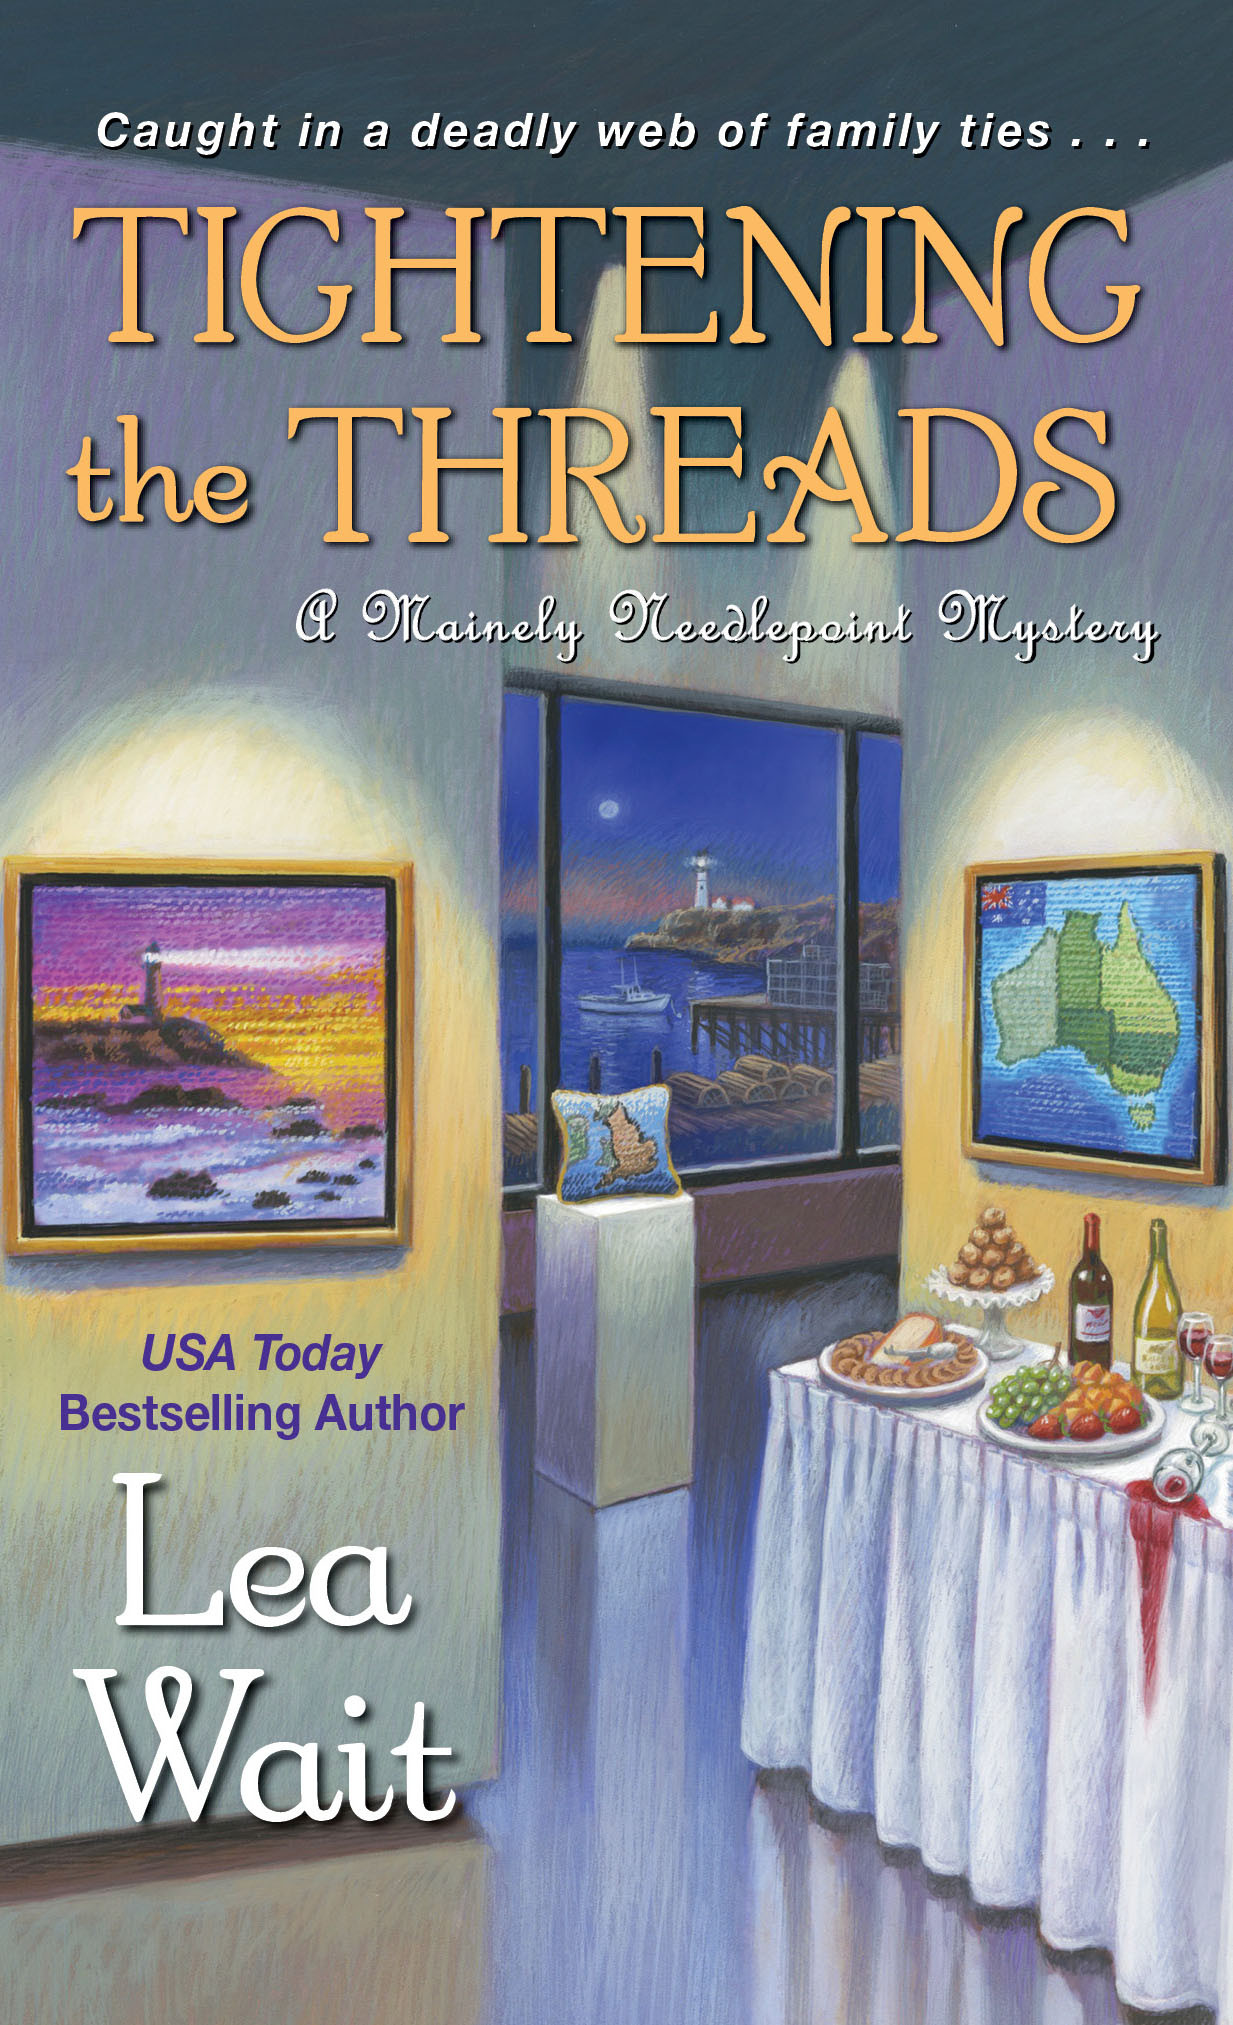 A Mainely Needlepoint Mystery: Tightening the Threads